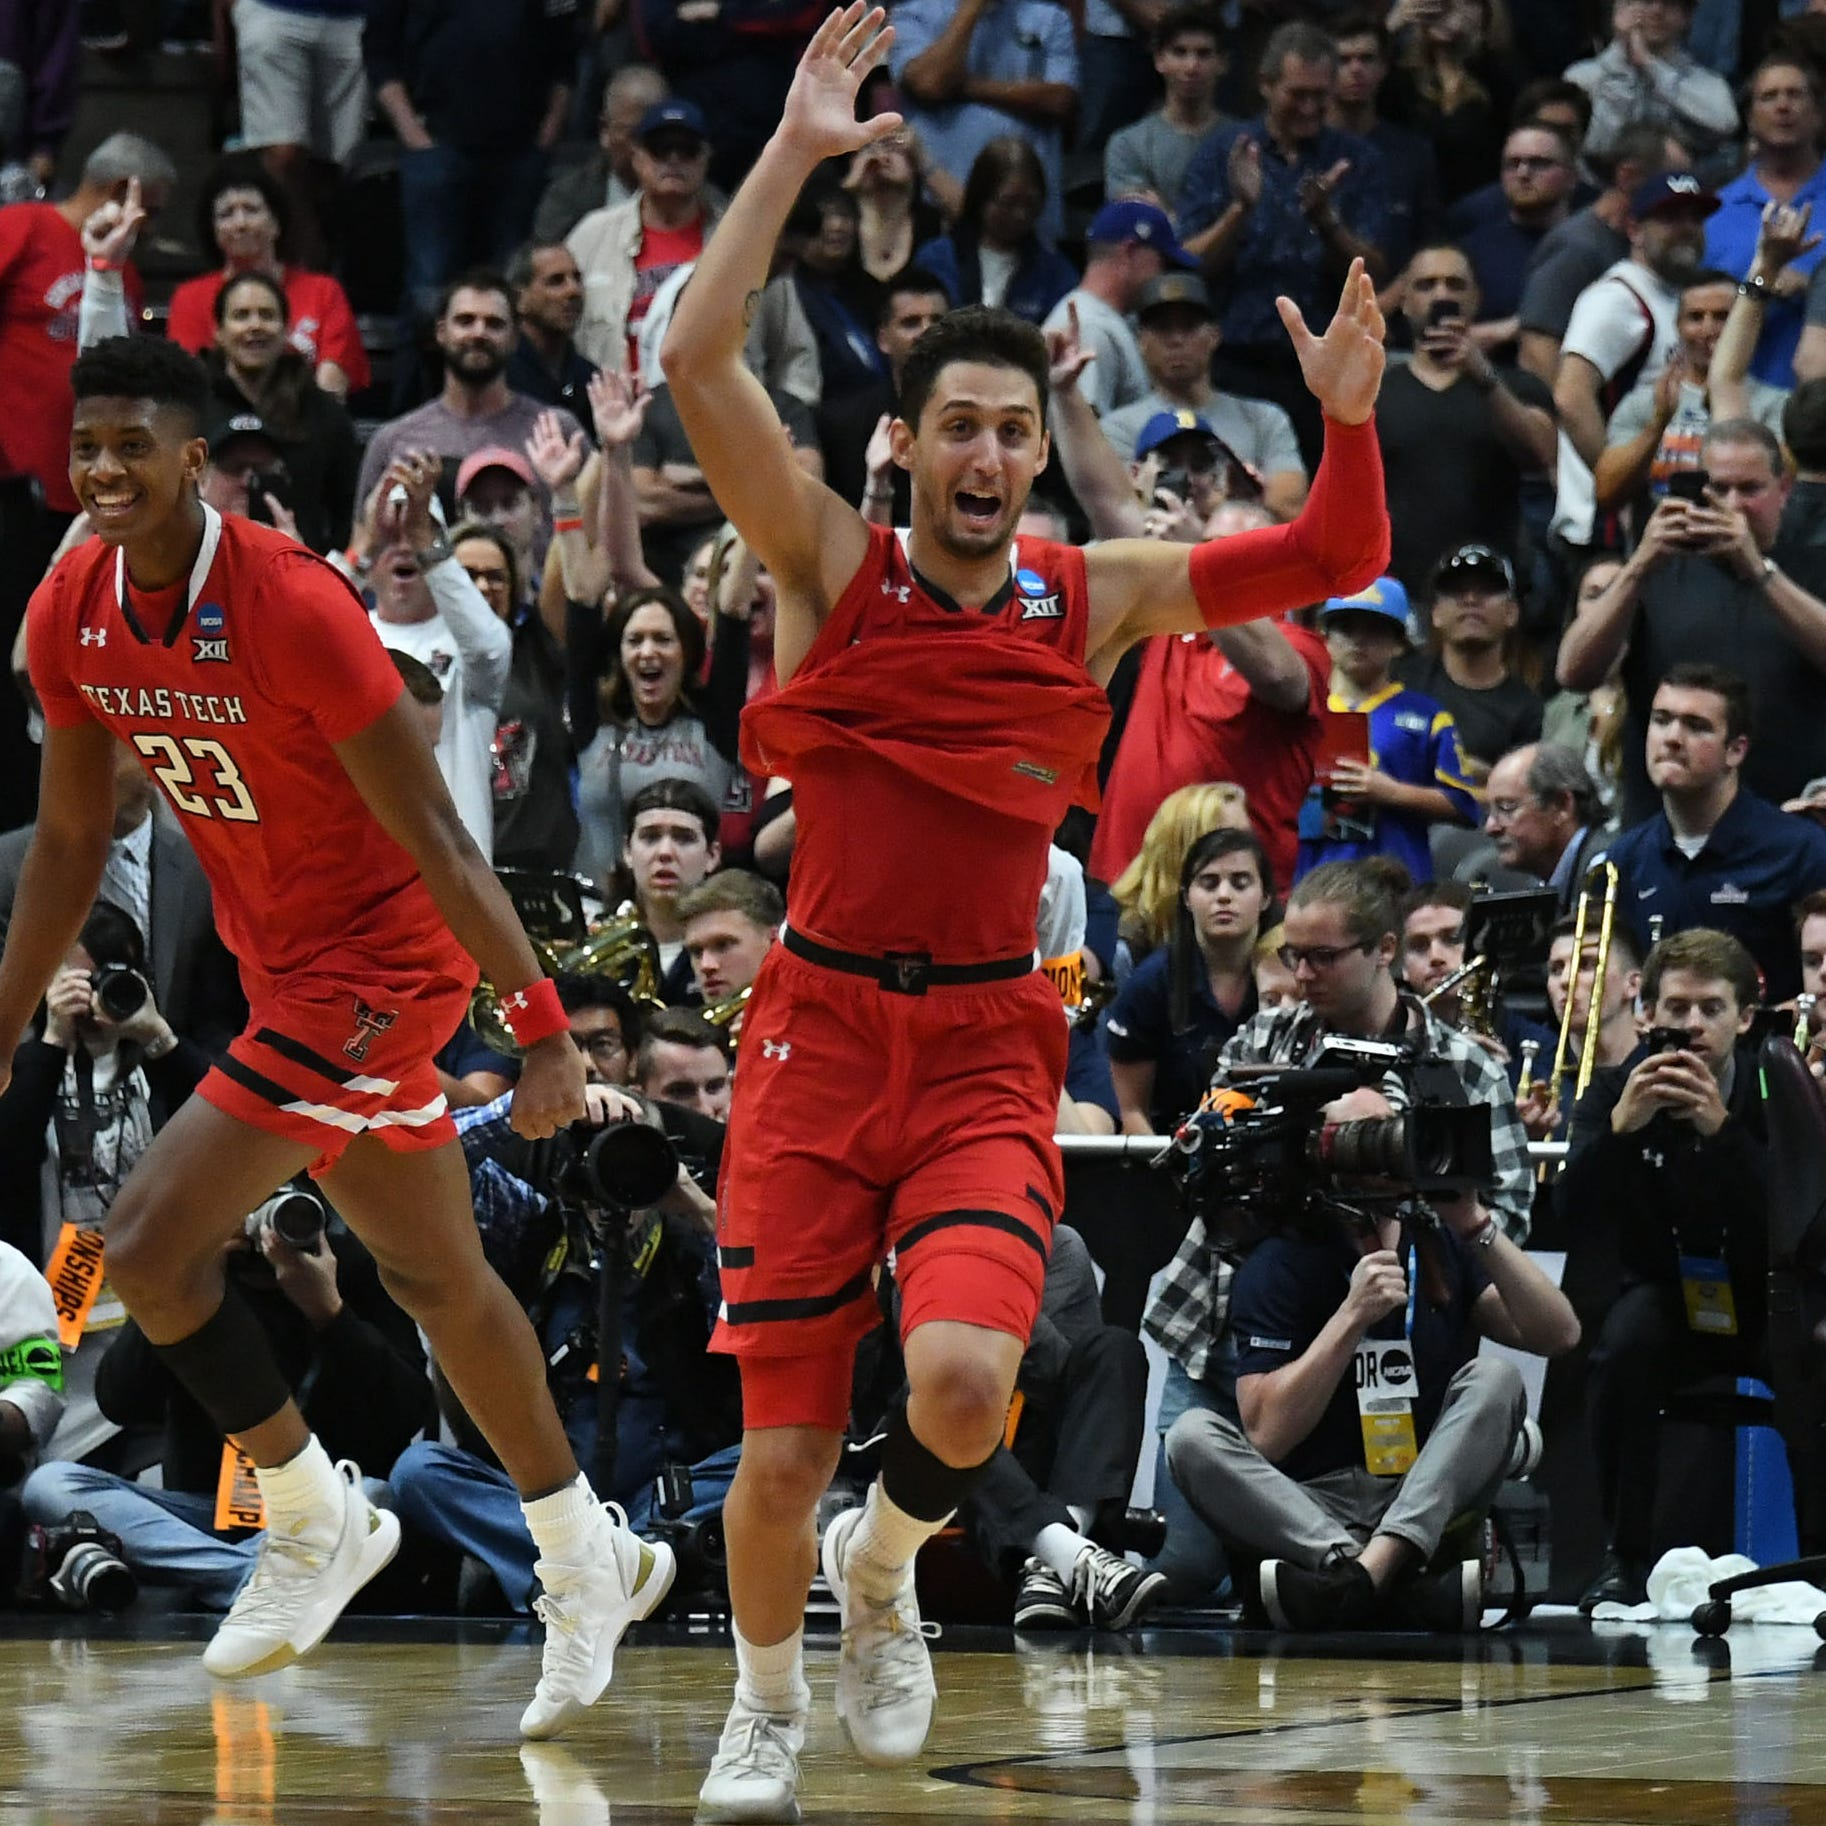 From soccer-crazed Italy to the Final Four, Moretti's journey has one constant: family